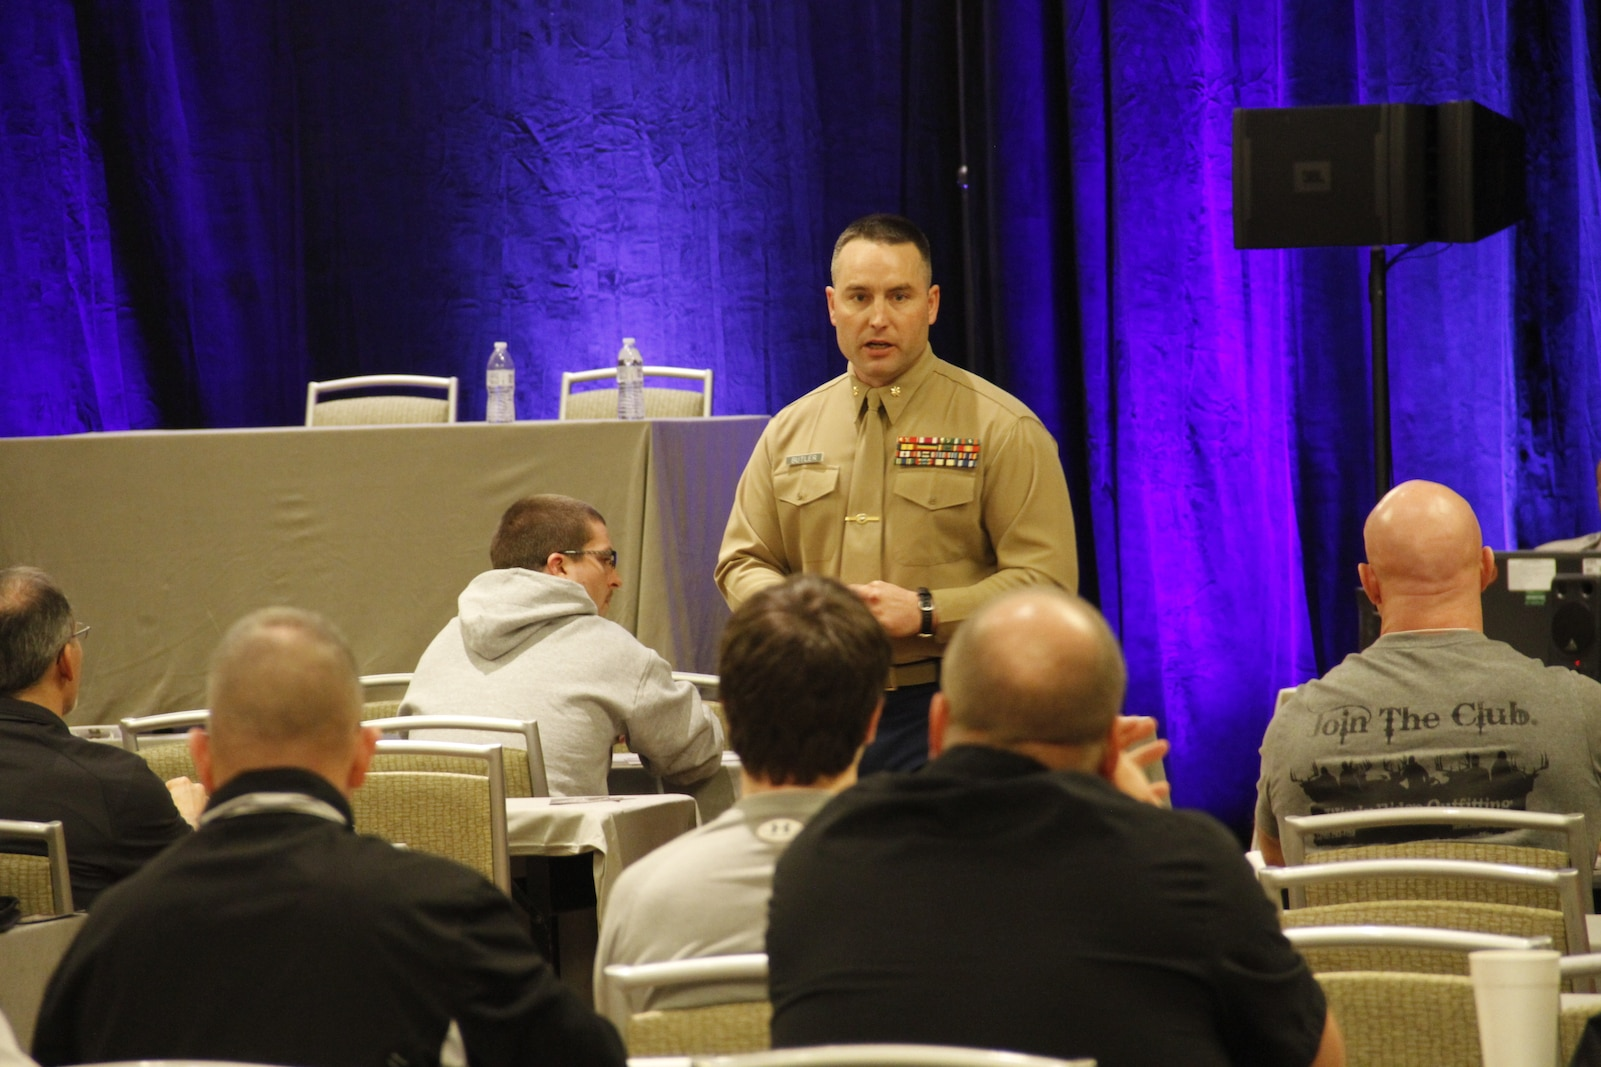 Major Alfred L. Butler, IV, Marine Corps Recruiting Station Kansas City commanding officer, addresses coaches on ways to instill leadership during the 2015 Glazier Clinics at the Westin Crown Center Feb. 6, 2015. Butler related how his experiences as an infantry officer and leading Marines and how many of the same principles he employed may help to foster teamwork and leadership amongst coaches' players.